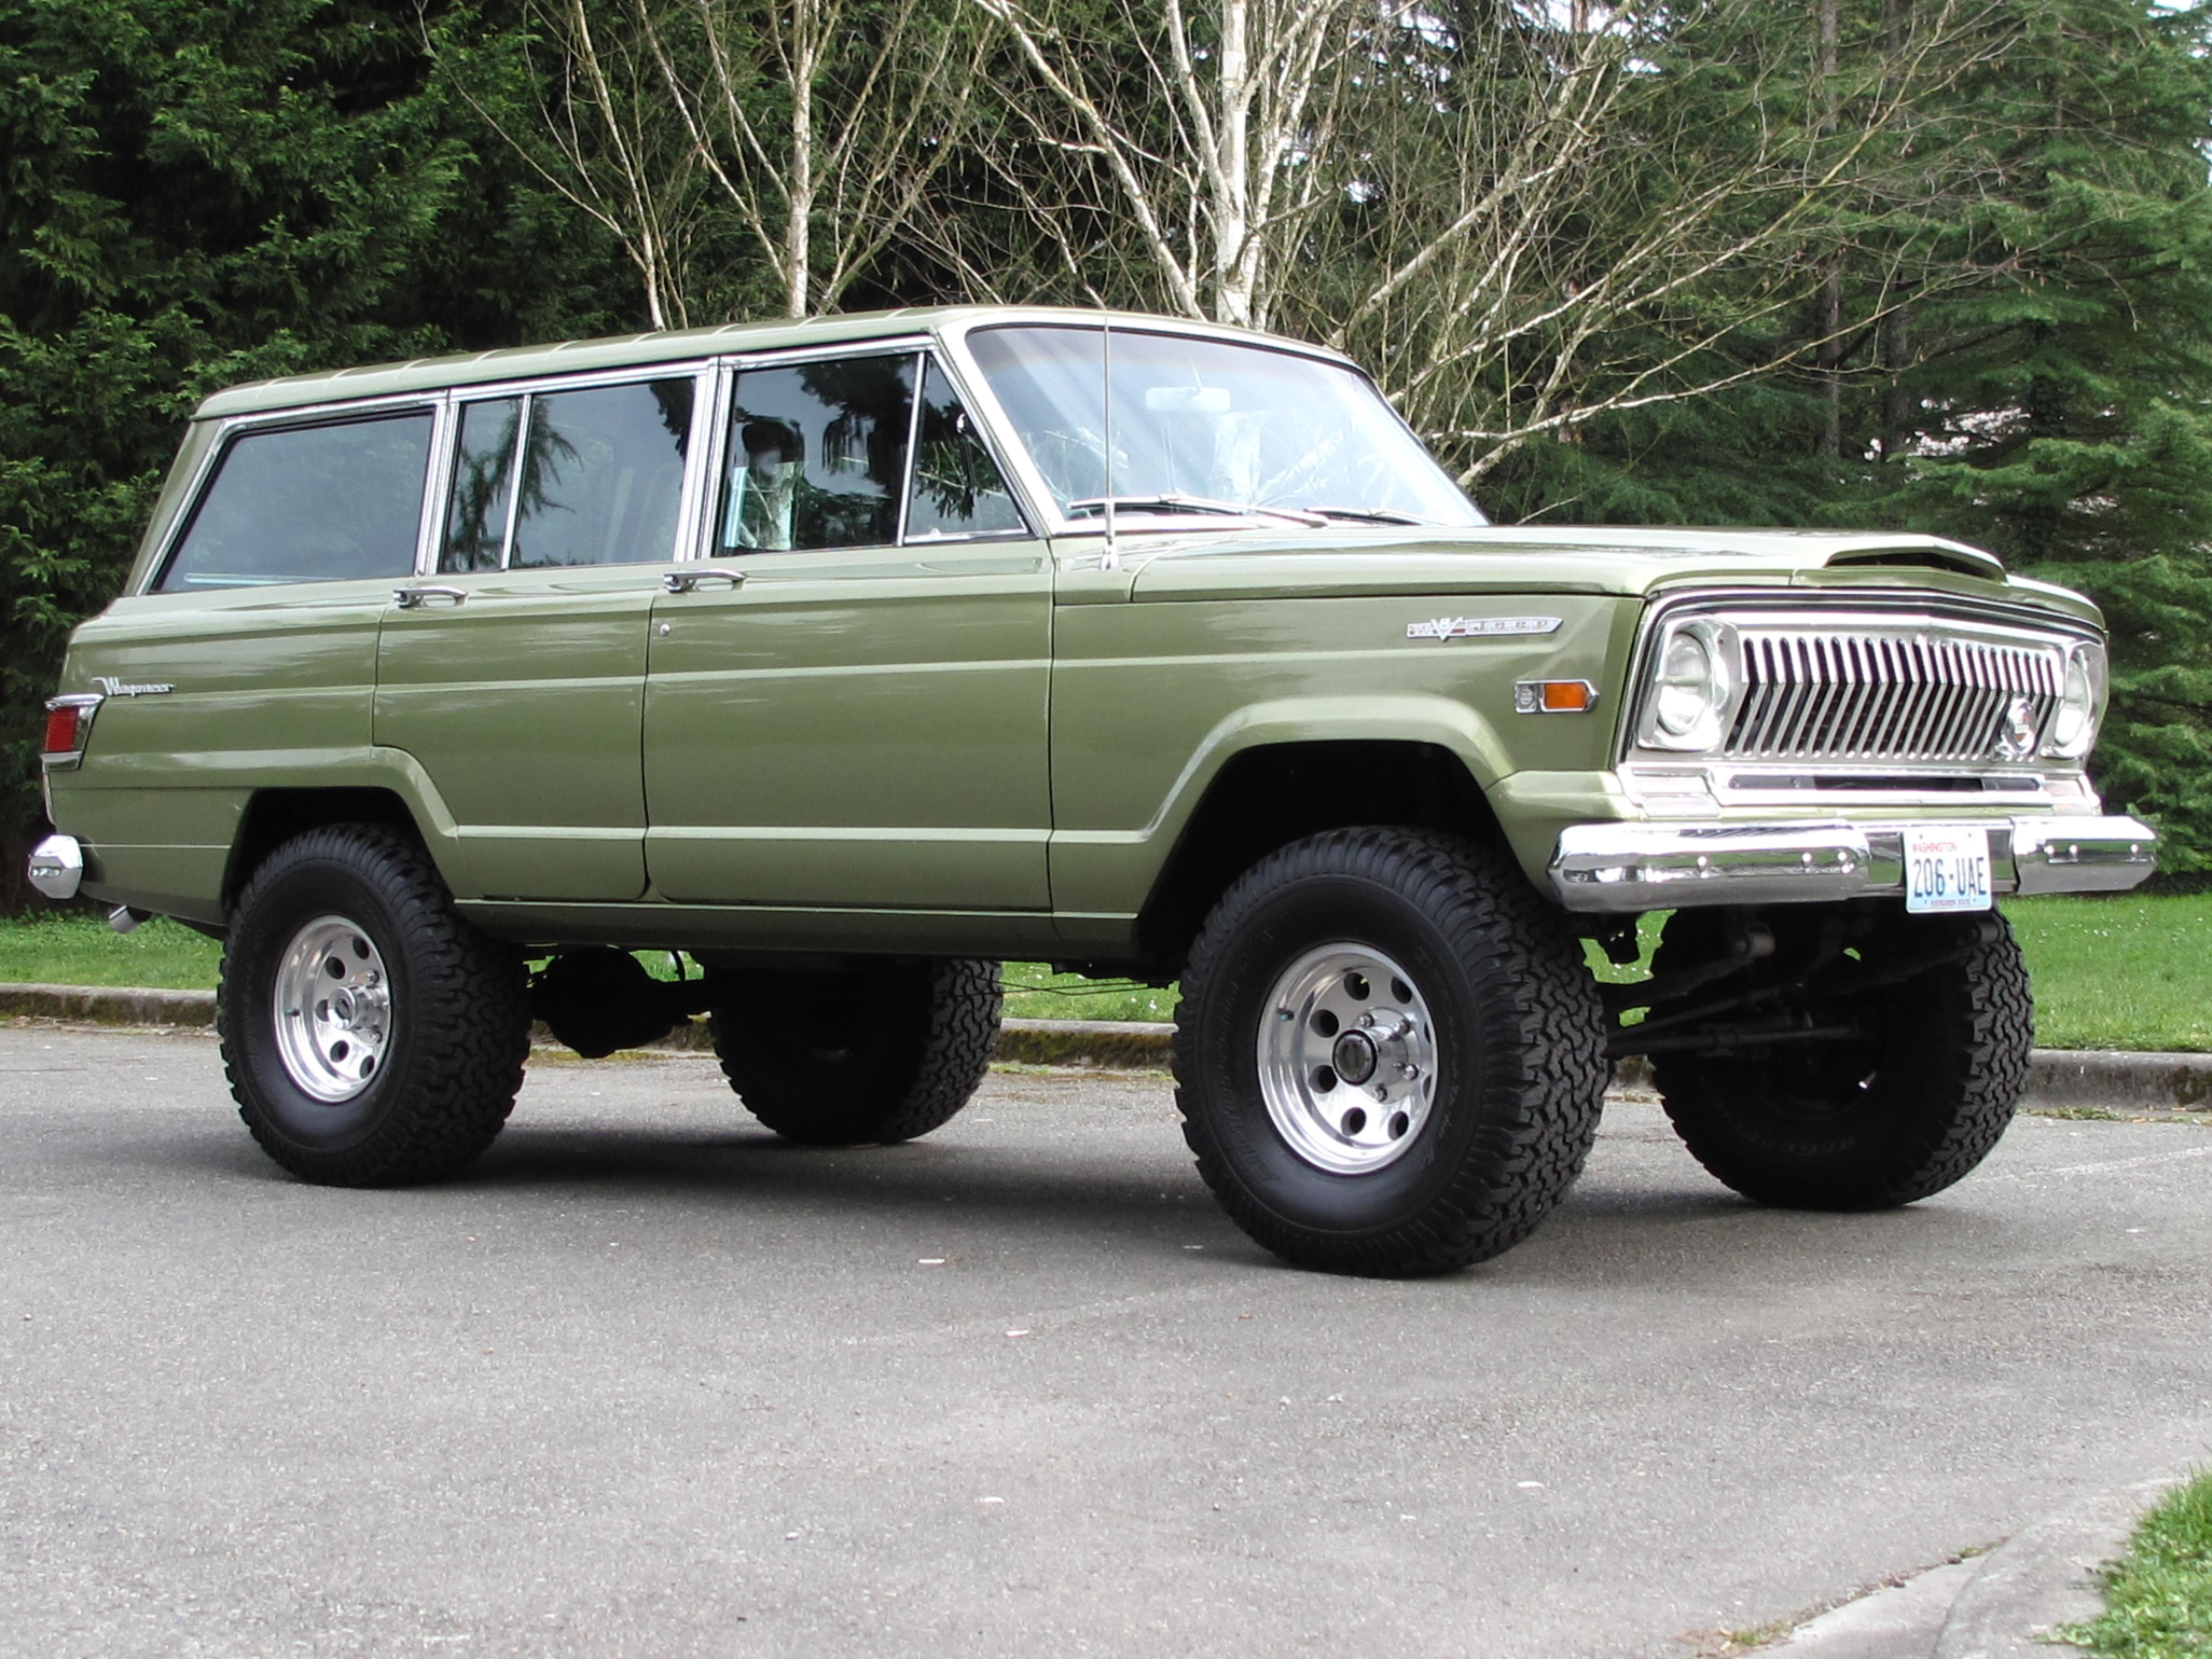 421579215103475393 also Is The Jeep Pickup Truck Making A  eback also The 2018 Suzuki Jimny Should Be A Perfect Tiny 4x4 1819085516 likewise Custom Work besides 1952 Jeep M38 Willys. on jeep j10